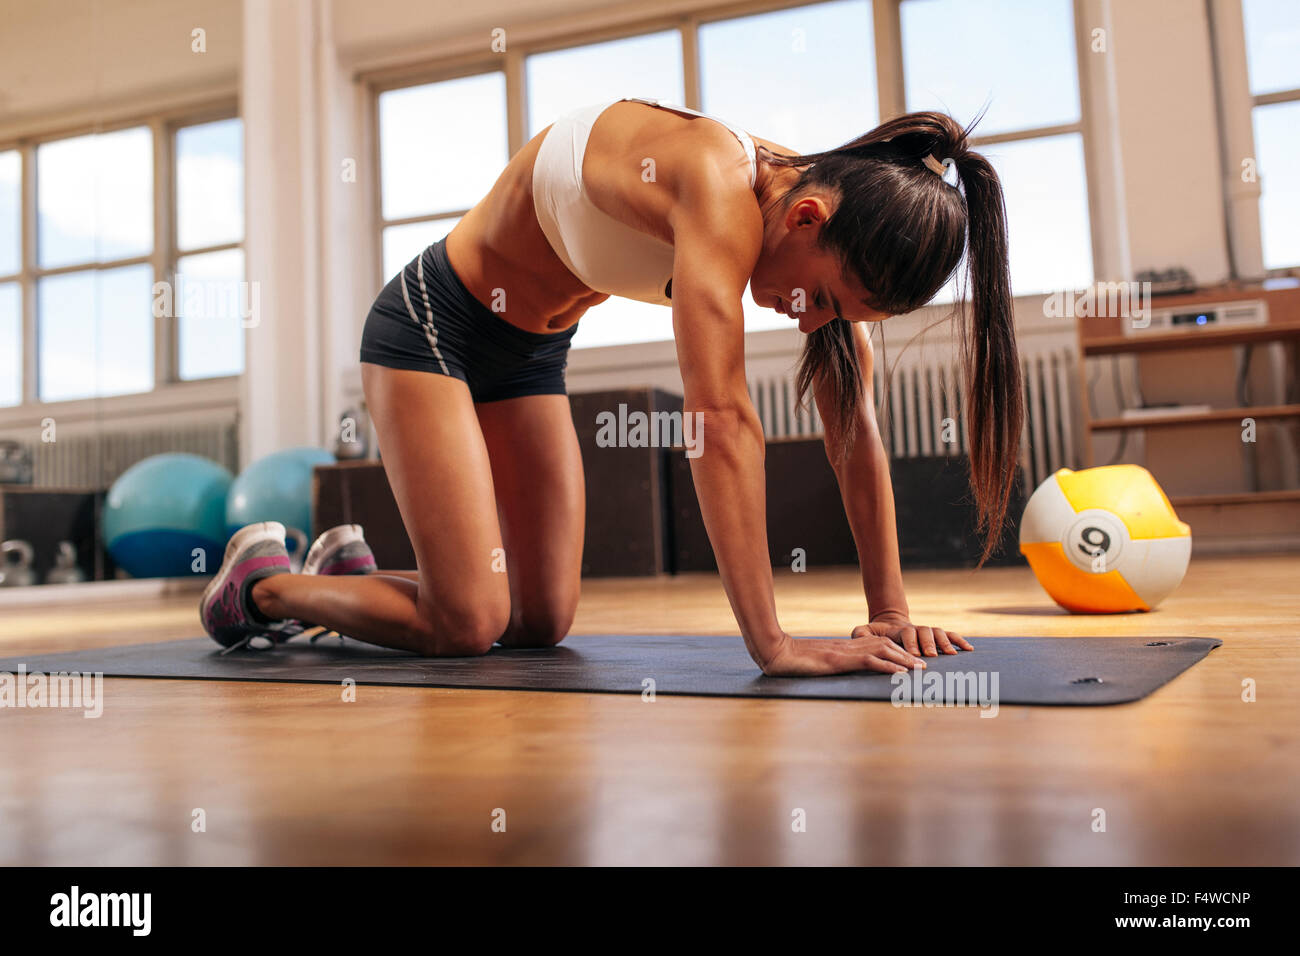 Shot of young woman stretching her back. Muscular woman exercising on fitness mat in gym. - Stock Image